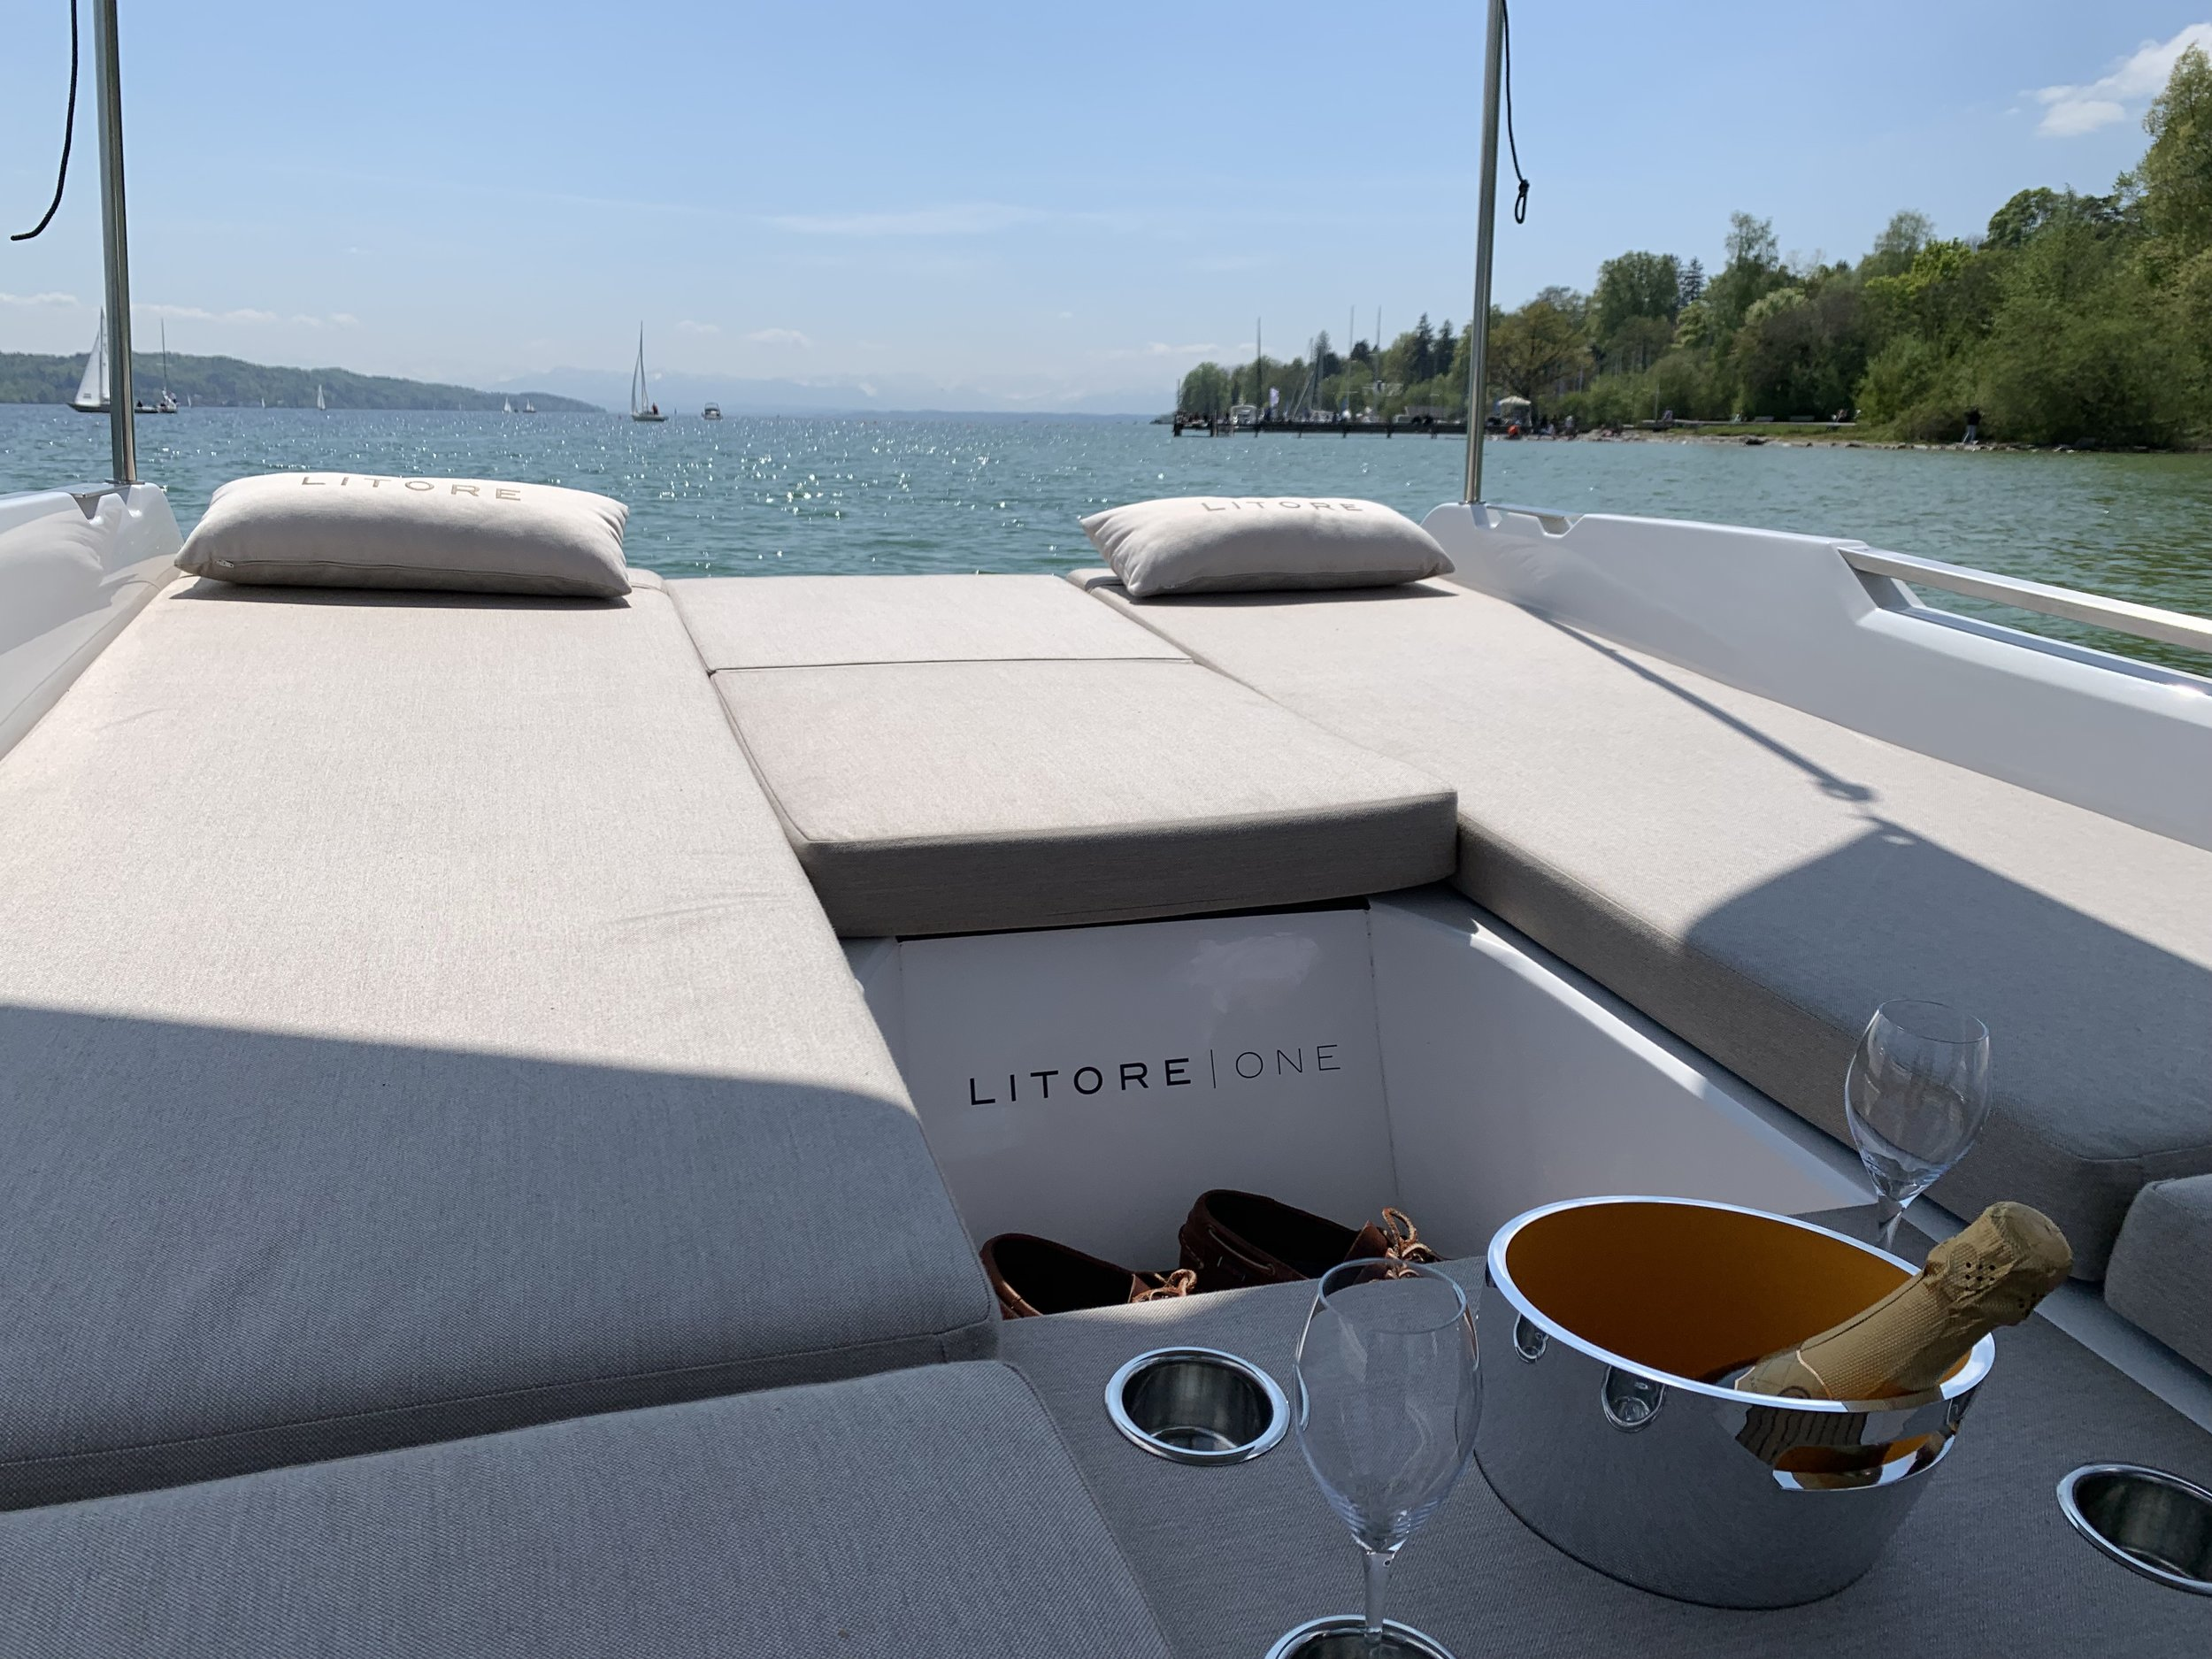 SPACe & COMFORT - Designed from the inside out, the Litore One is meticulously sculpted to maximize deck space.